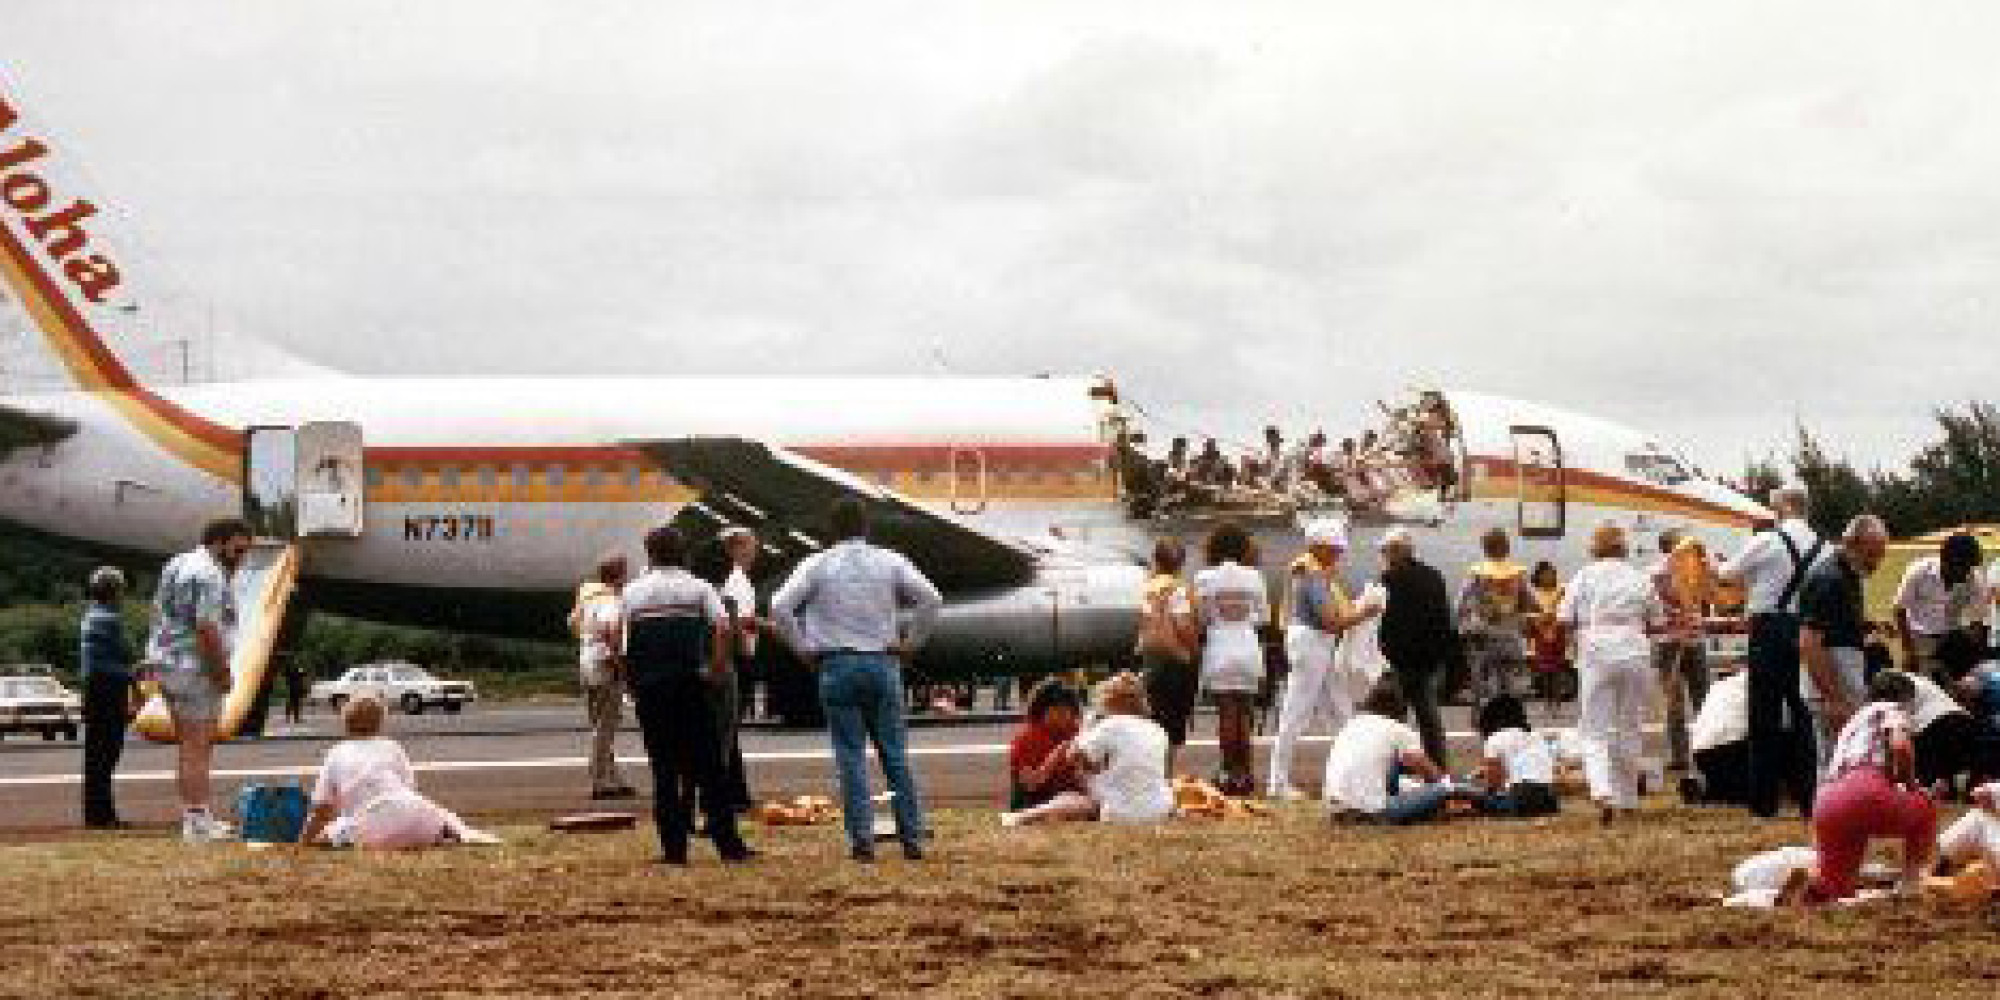 9 Unbelievable Airplane Incidents That Will Make You